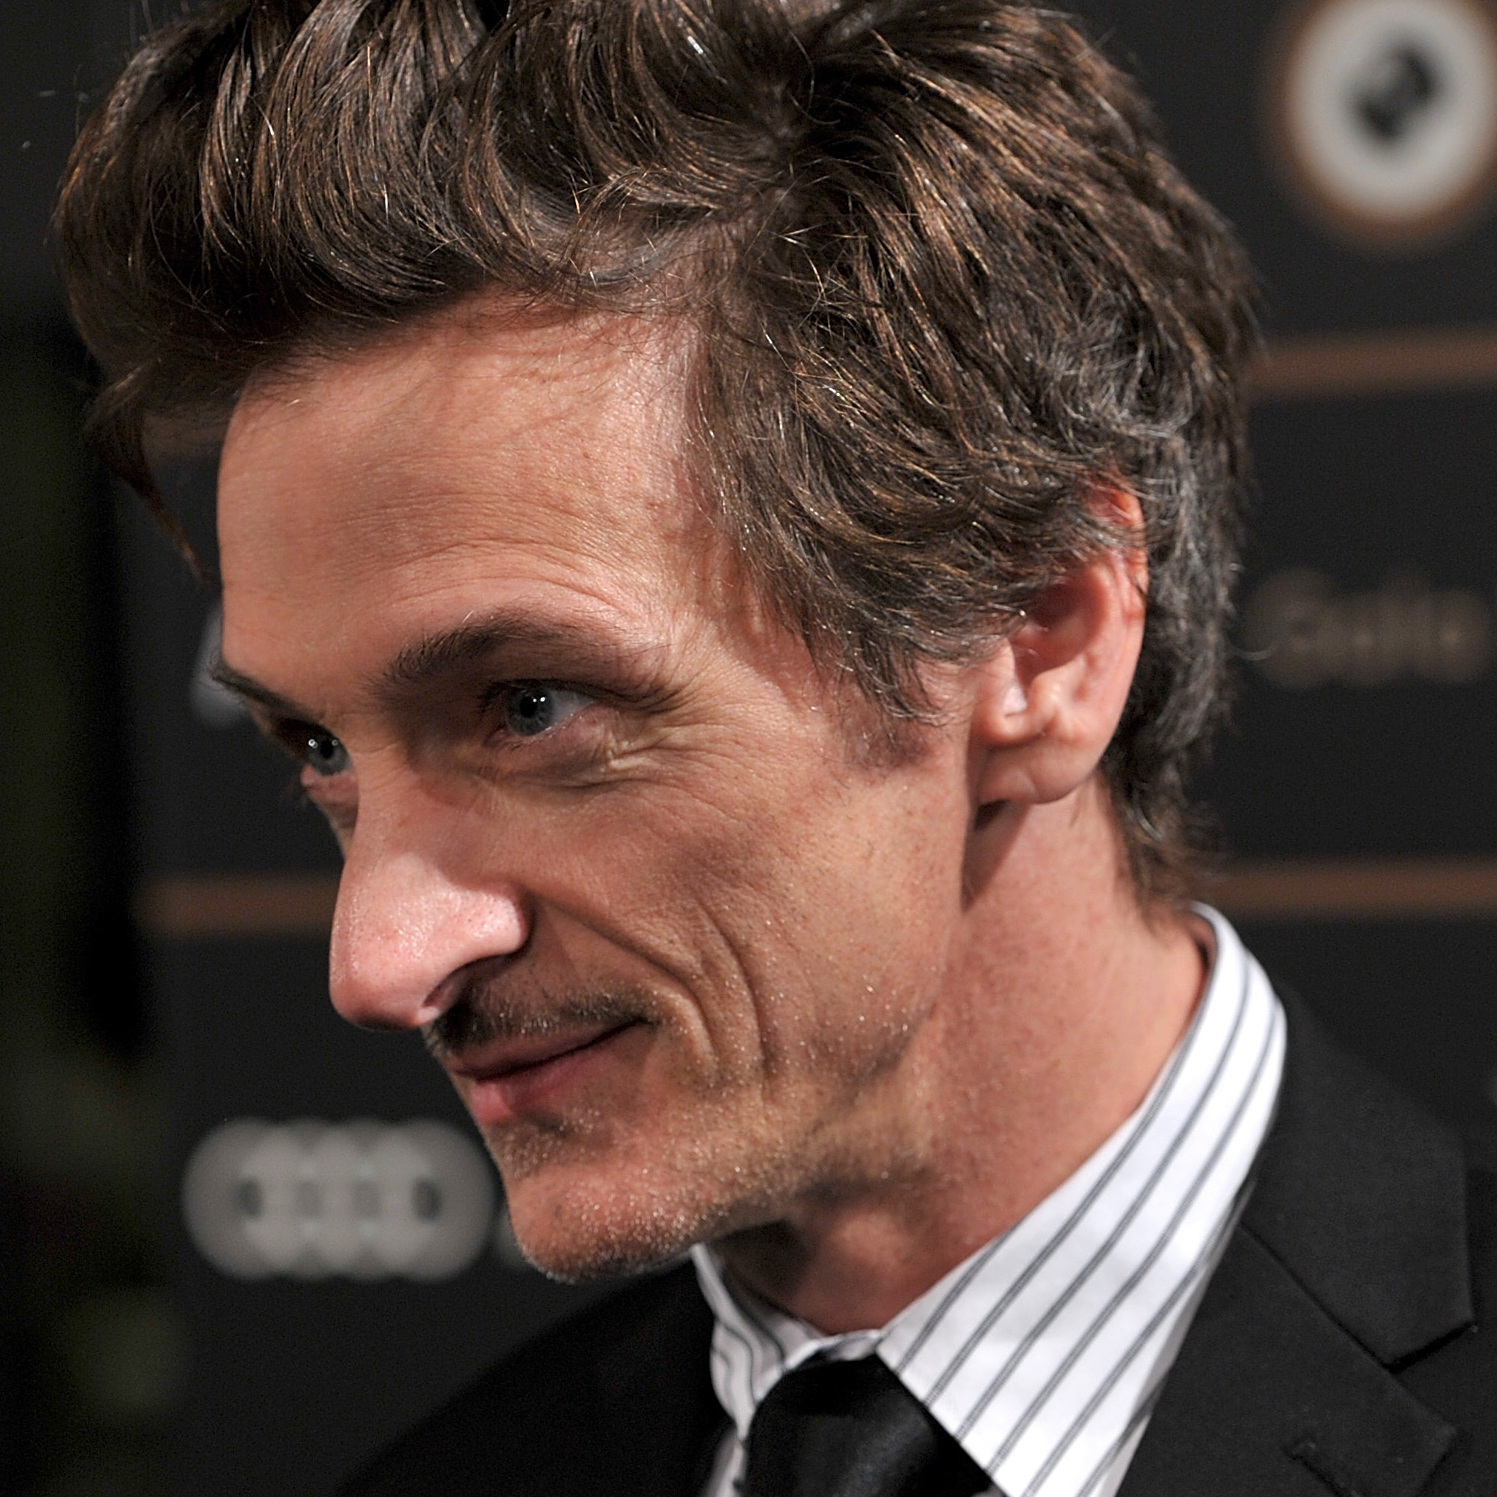 Actor John Hawkes is known for his roles on film and television, from HBO's Deadwood to his Academy Award-nominated role in Winter's Bone.